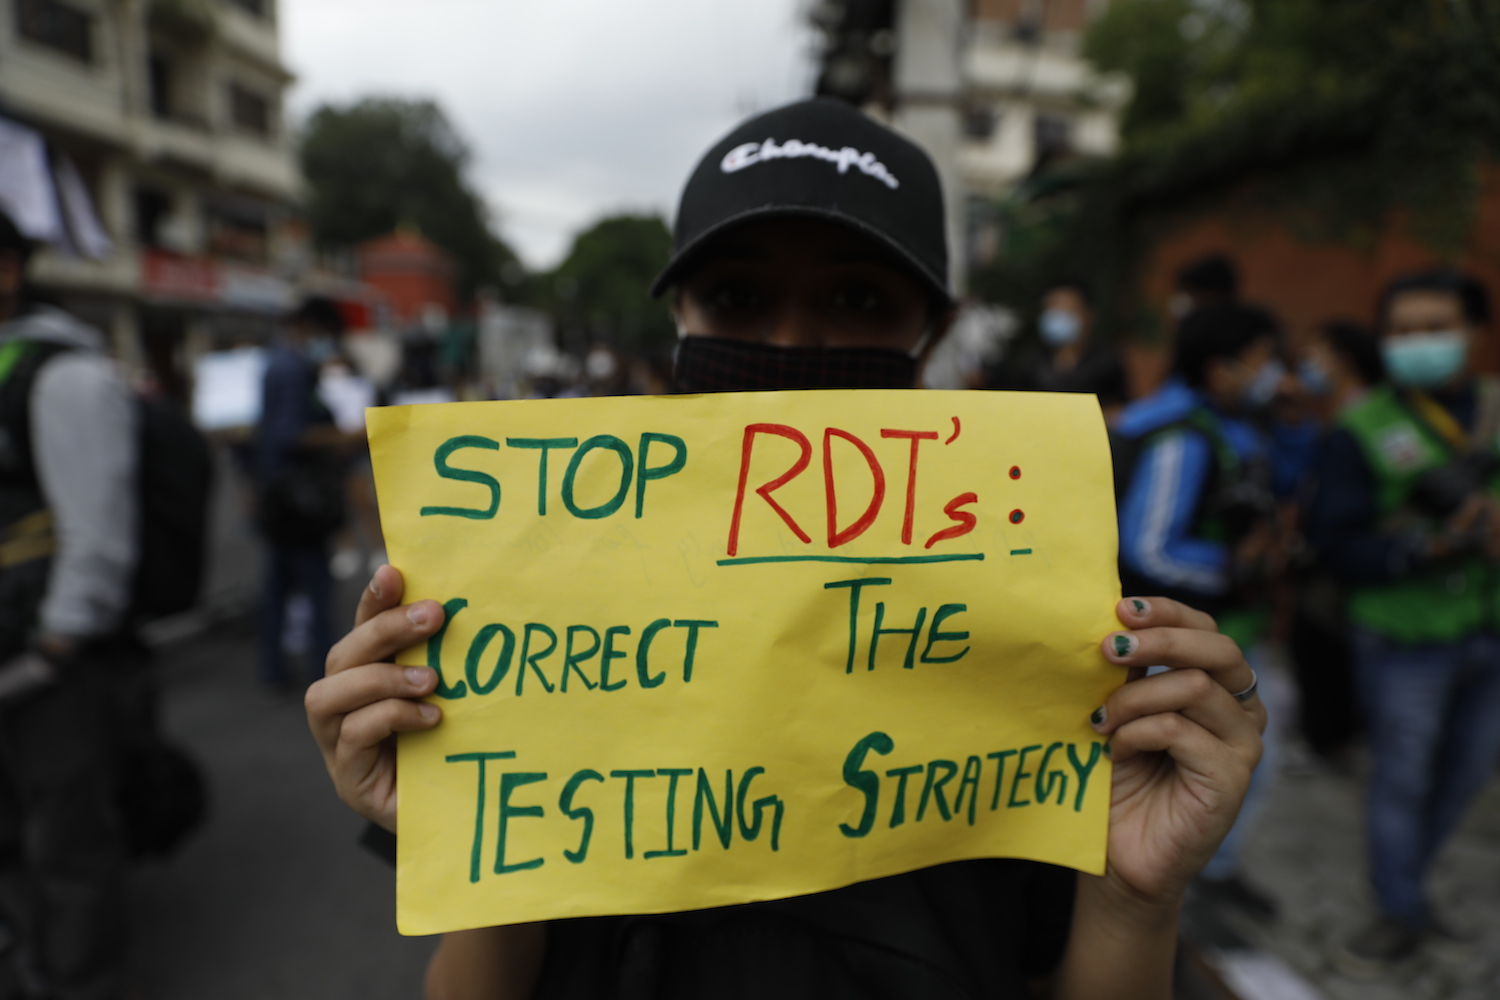 Stop rapid testing now